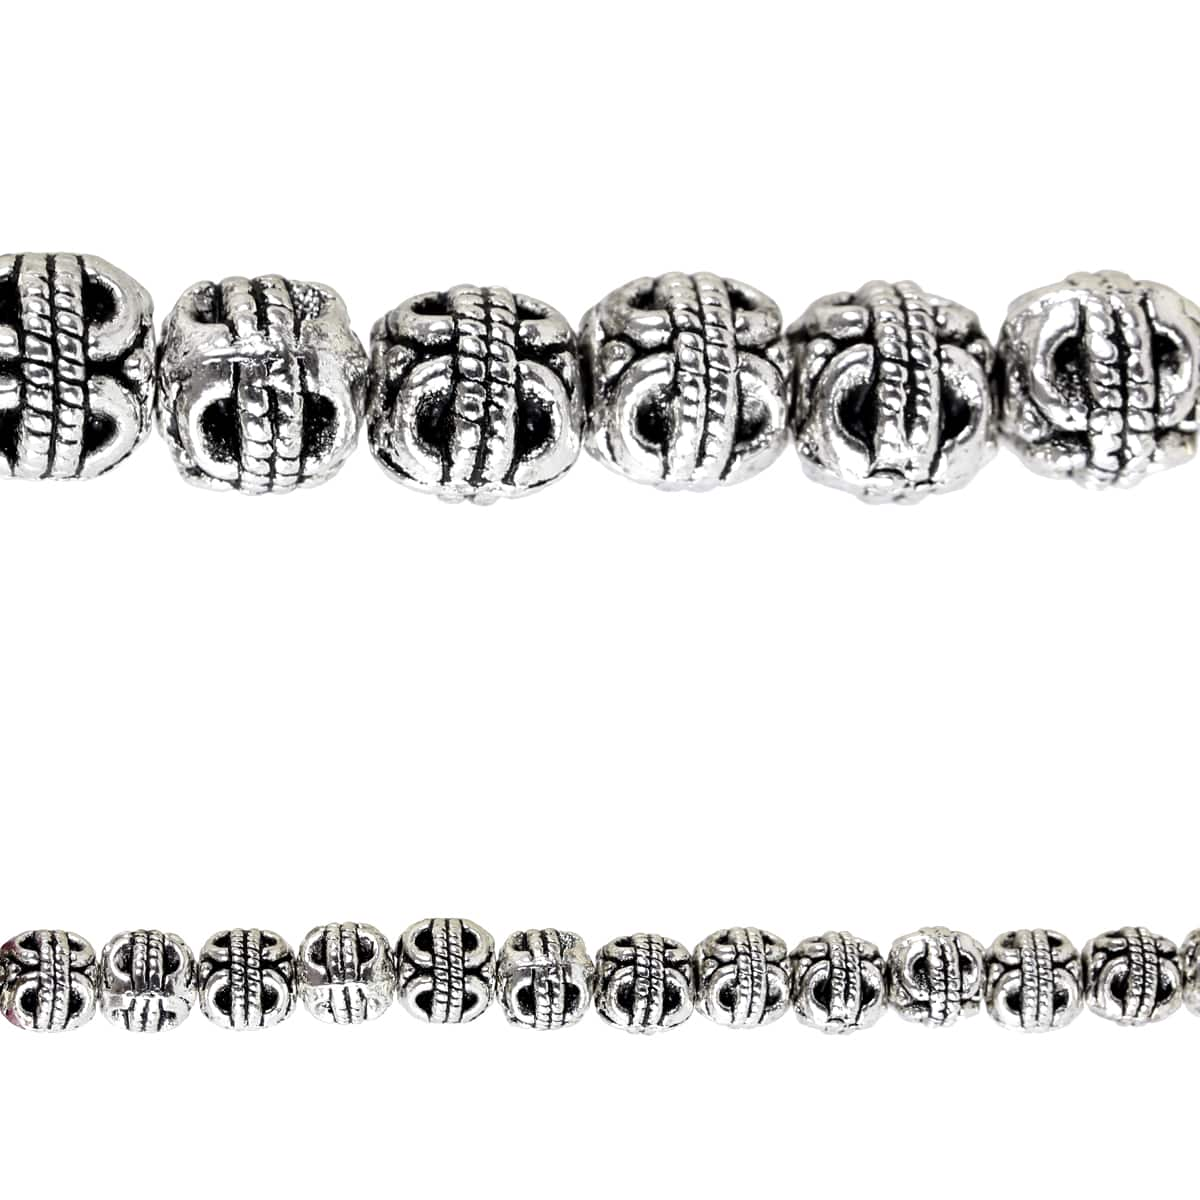 Bead Gallery® Silver Plated Carved Round Beads, 6mm by Bead Gallery